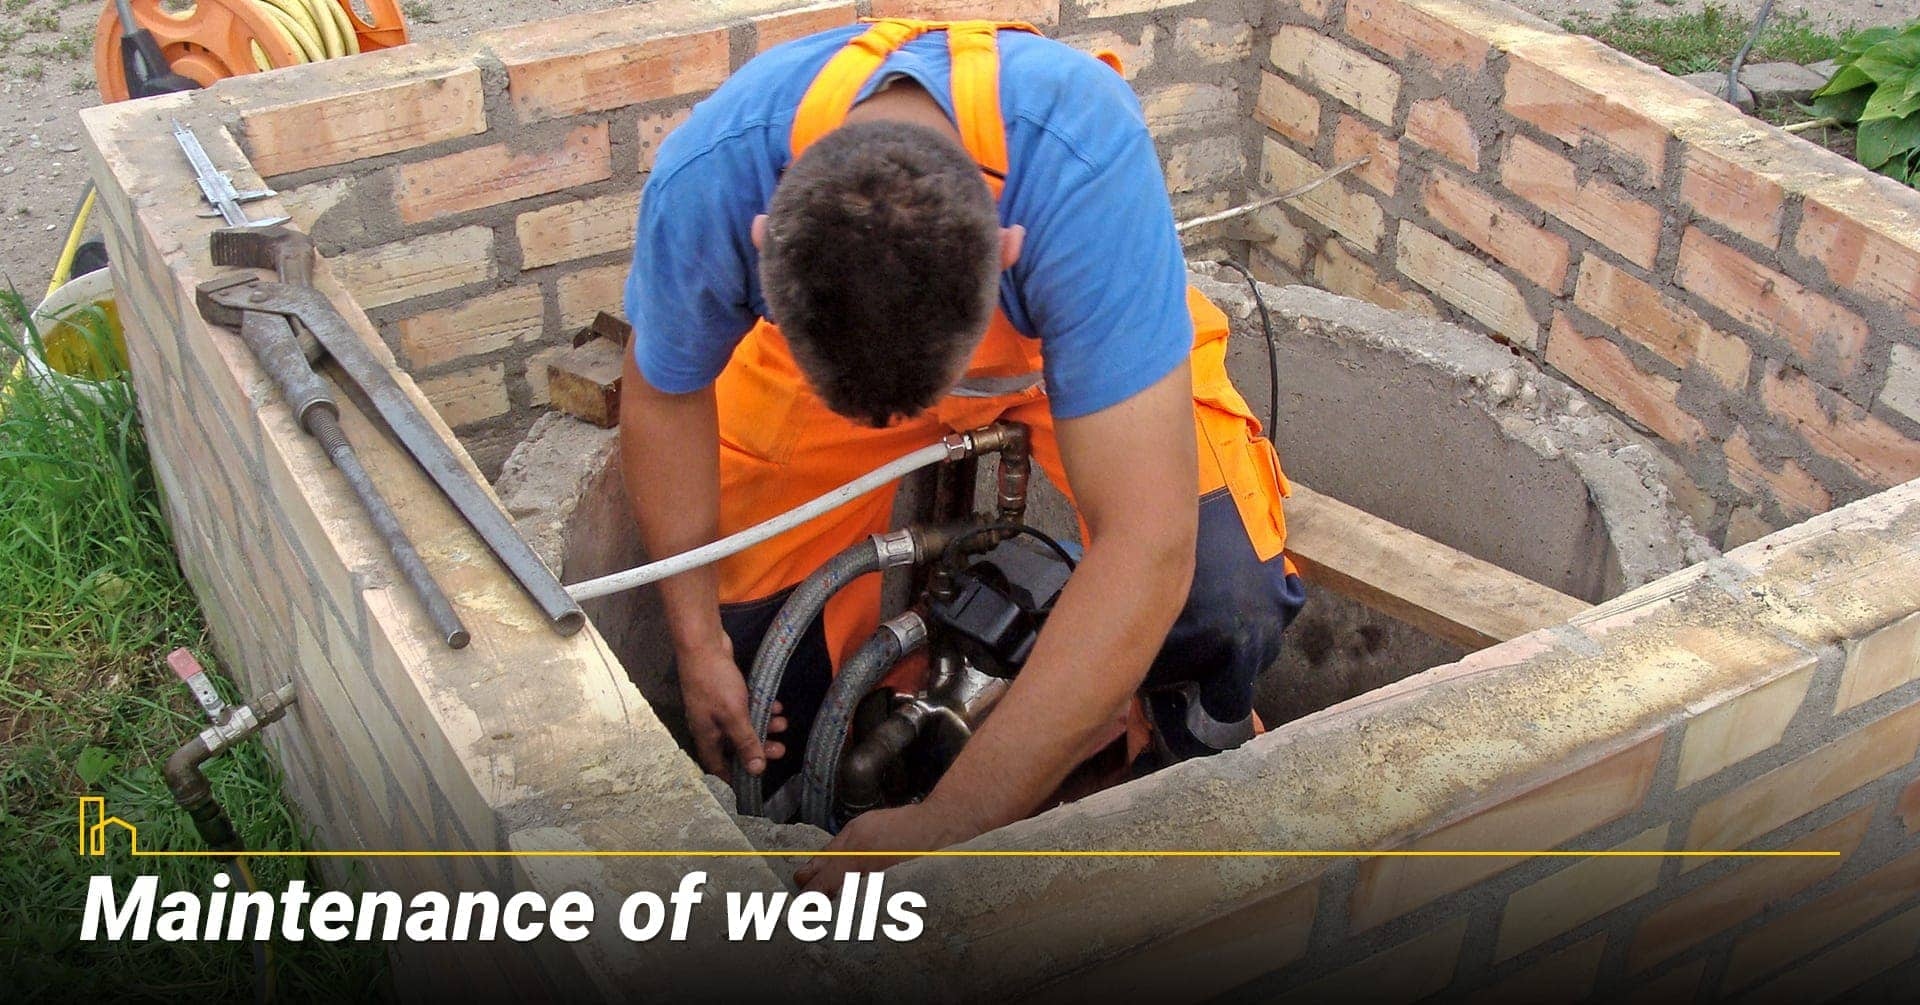 Maintenance of wells, keep wells in operation